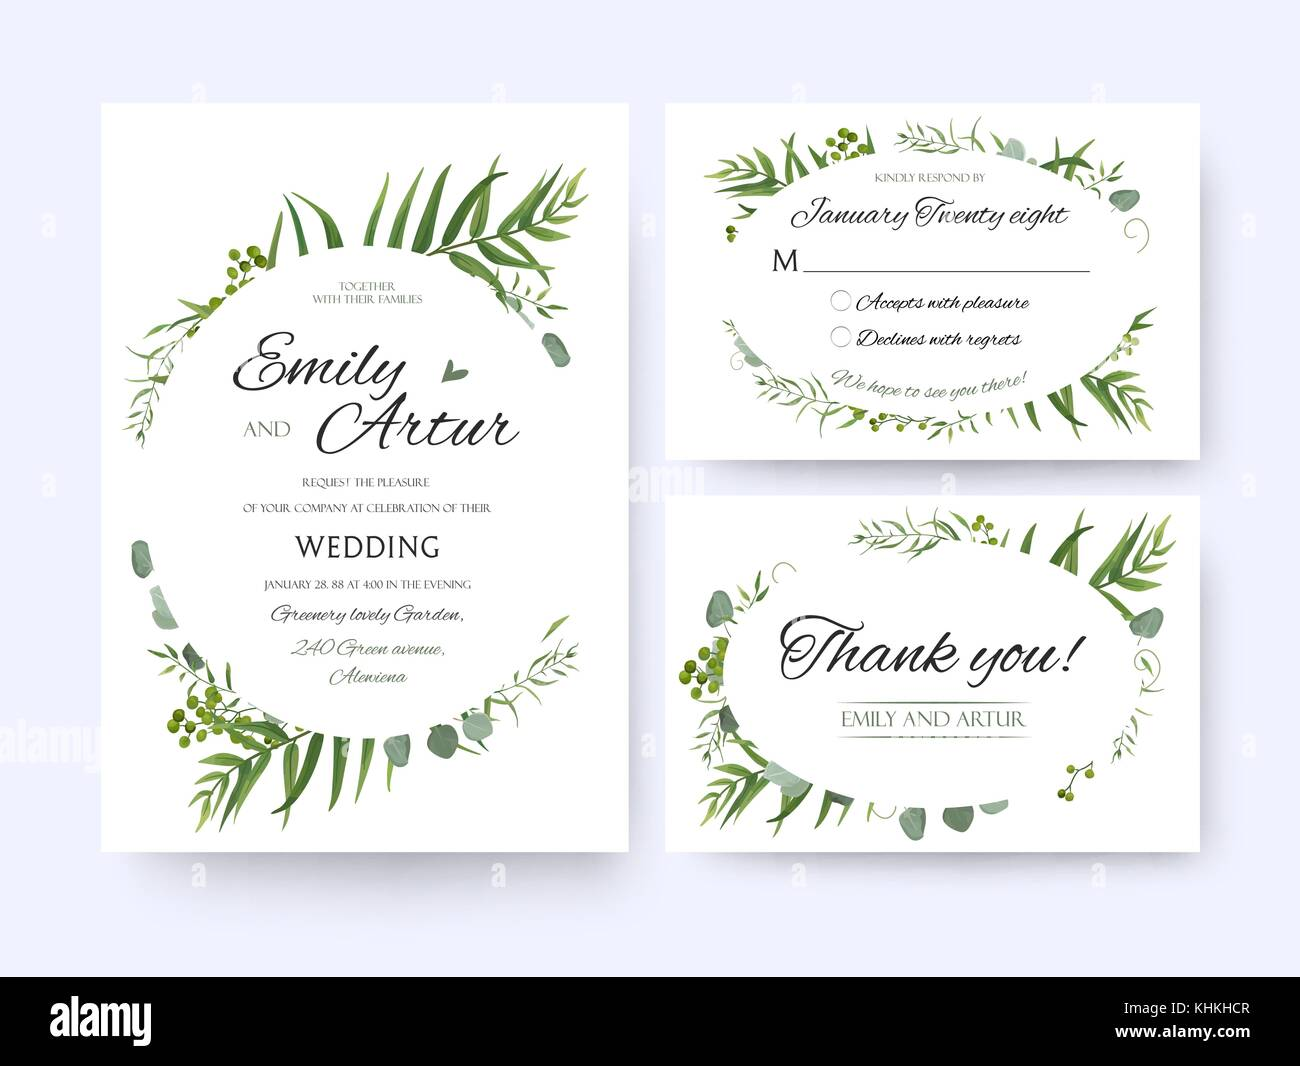 Wedding invite, invitation rsvp thank you card vector floral ...